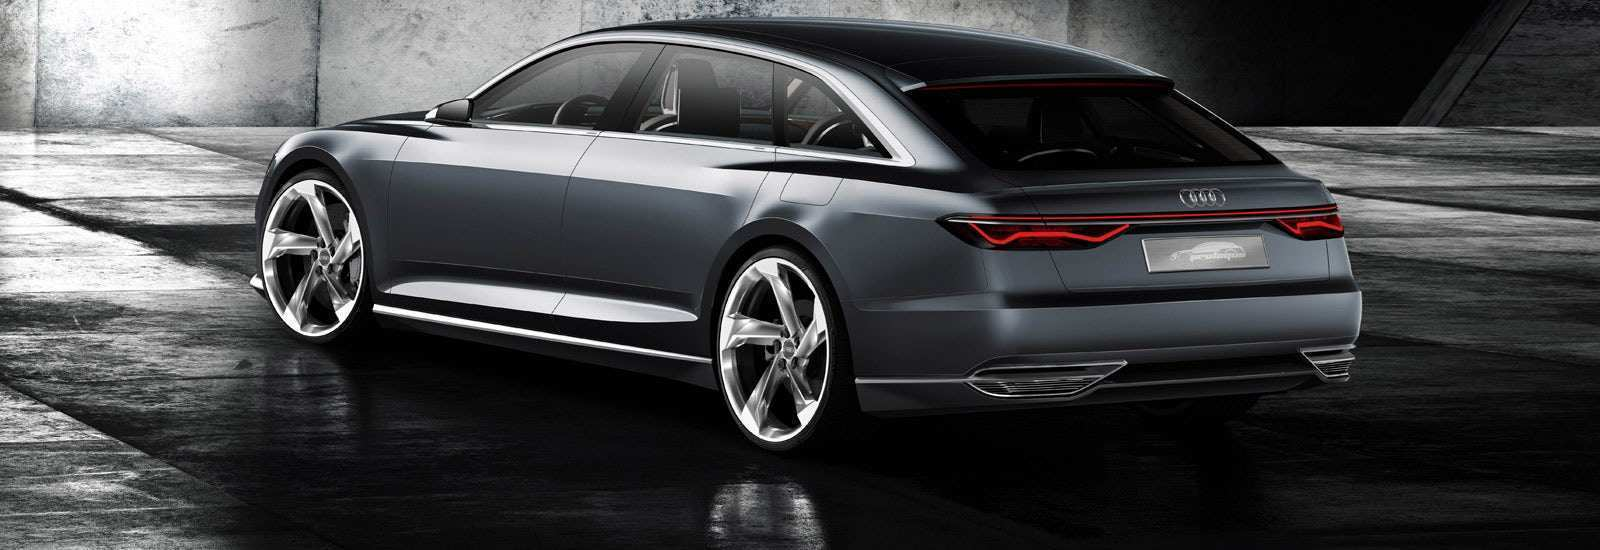 70 New 2019 Audi A6 Release Date Rumors by 2019 Audi A6 Release Date